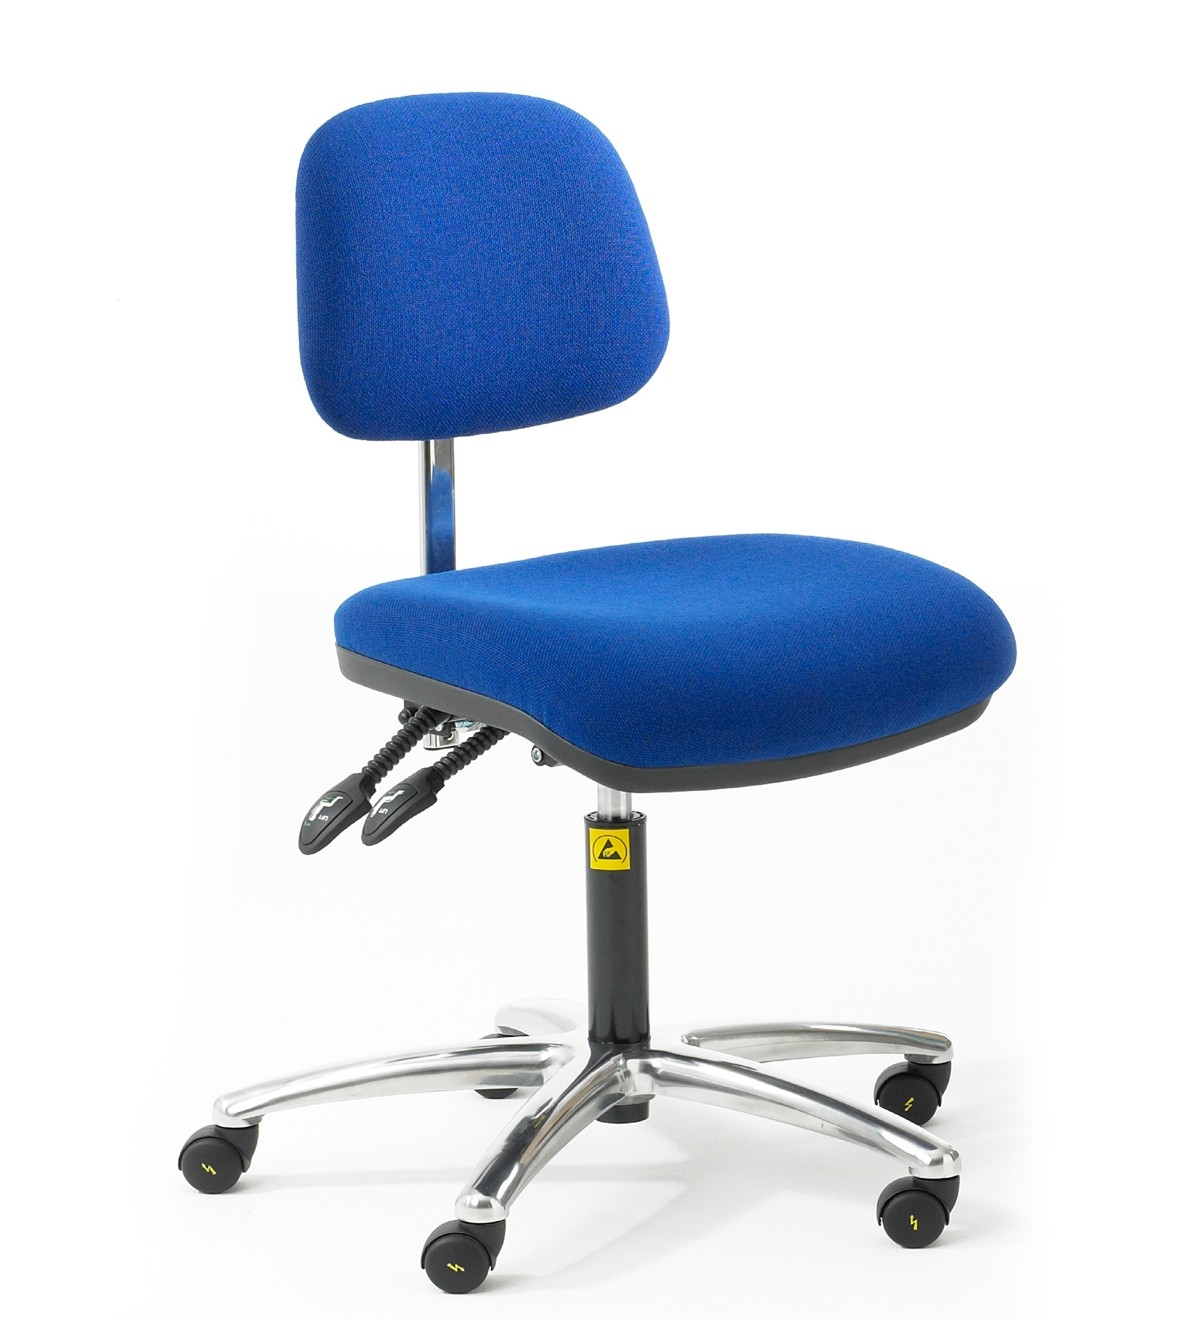 C80 - ESD Ergonomic Chair with feet 450-590mm height adjustment